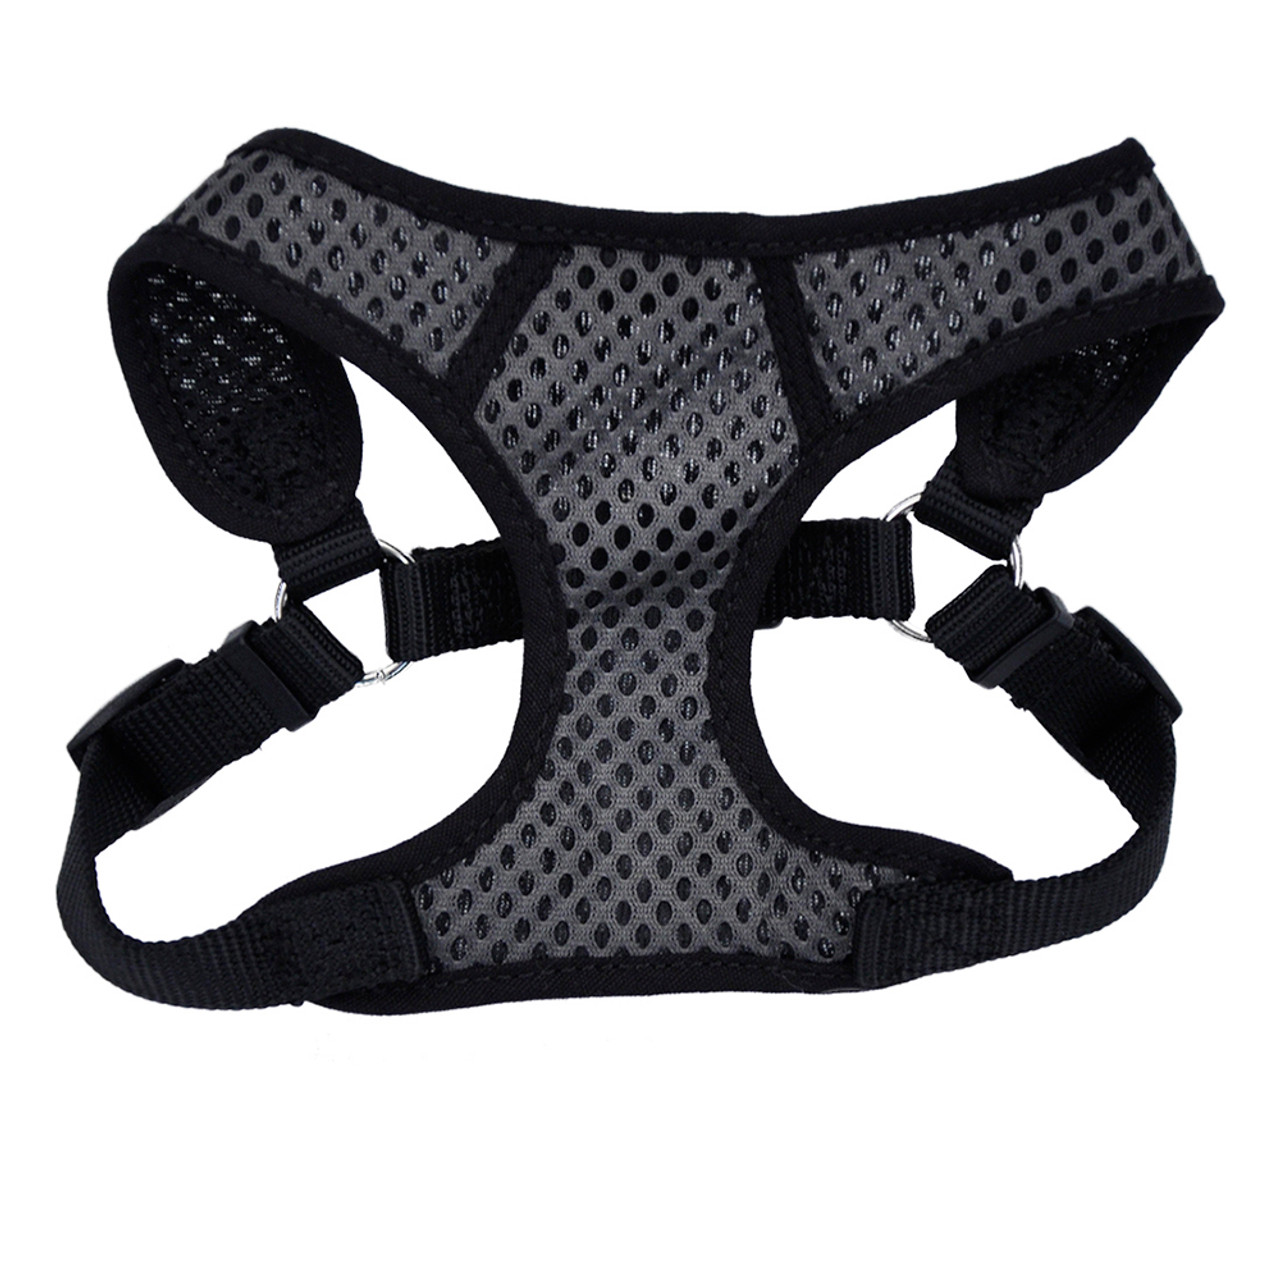 Comfort Soft Sport Wrap Adjustable Black Dog Harness